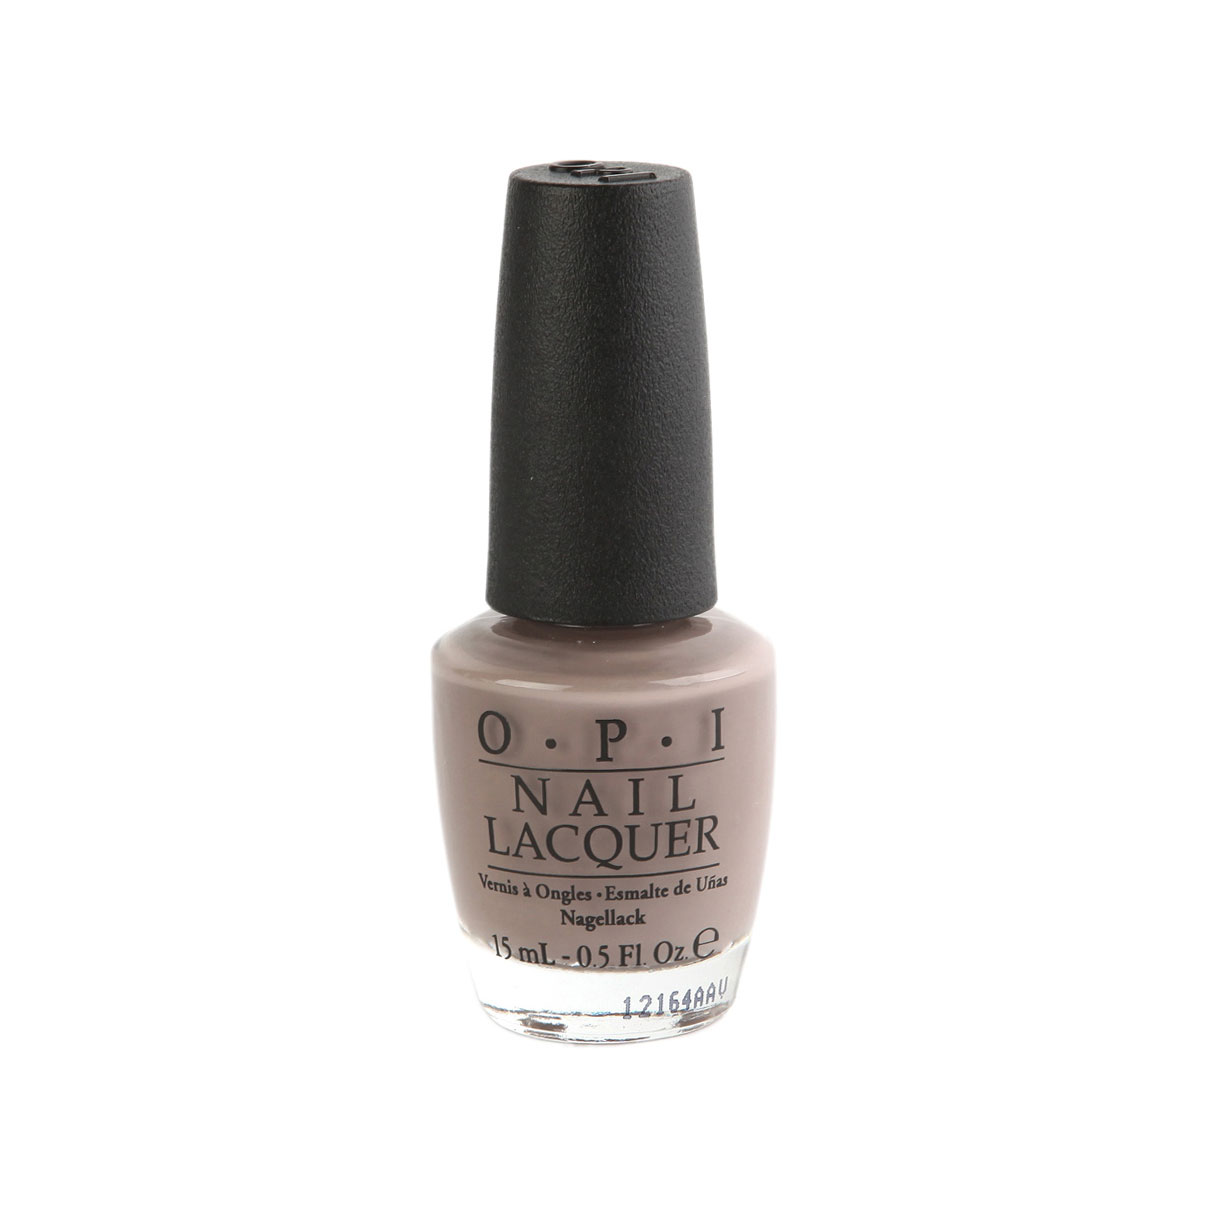 OPI Nail Lacquer in Berlin There Done That